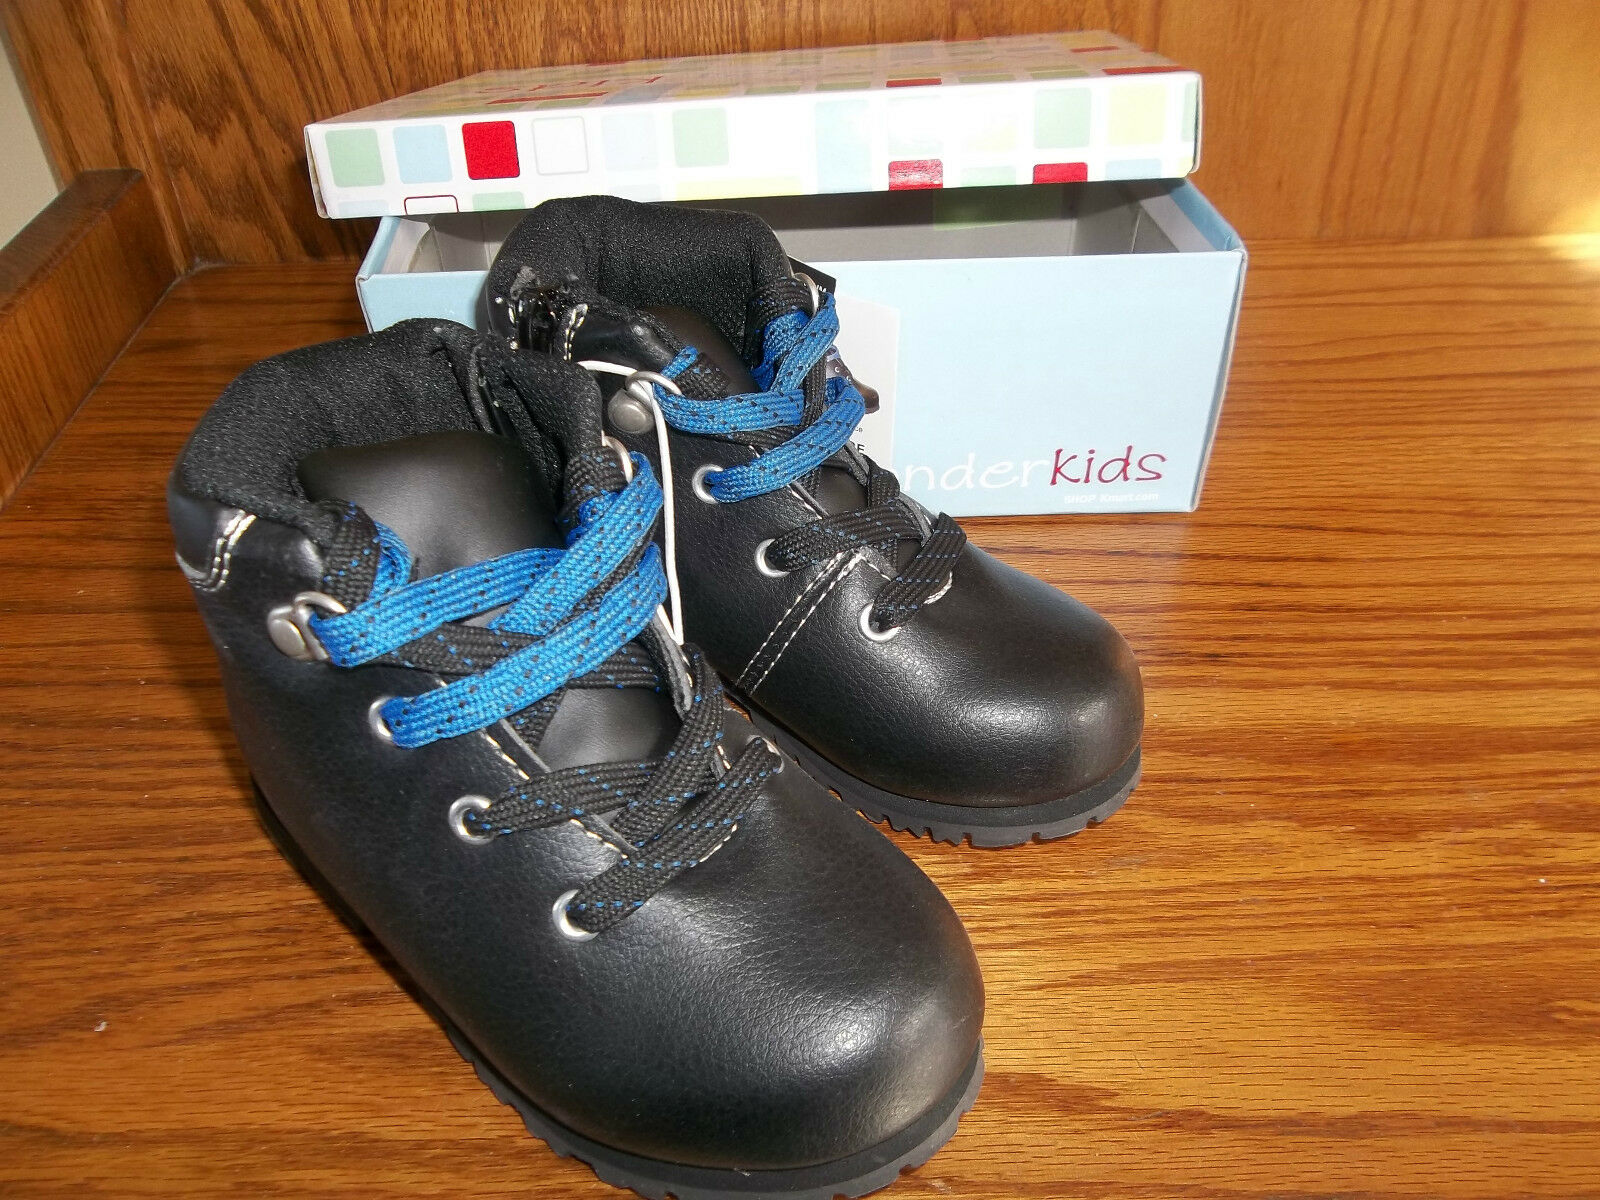 NEW WONDERKIDS BLACK BOOTS BABY/ TODDLER SIZE 10 MSP $19.99